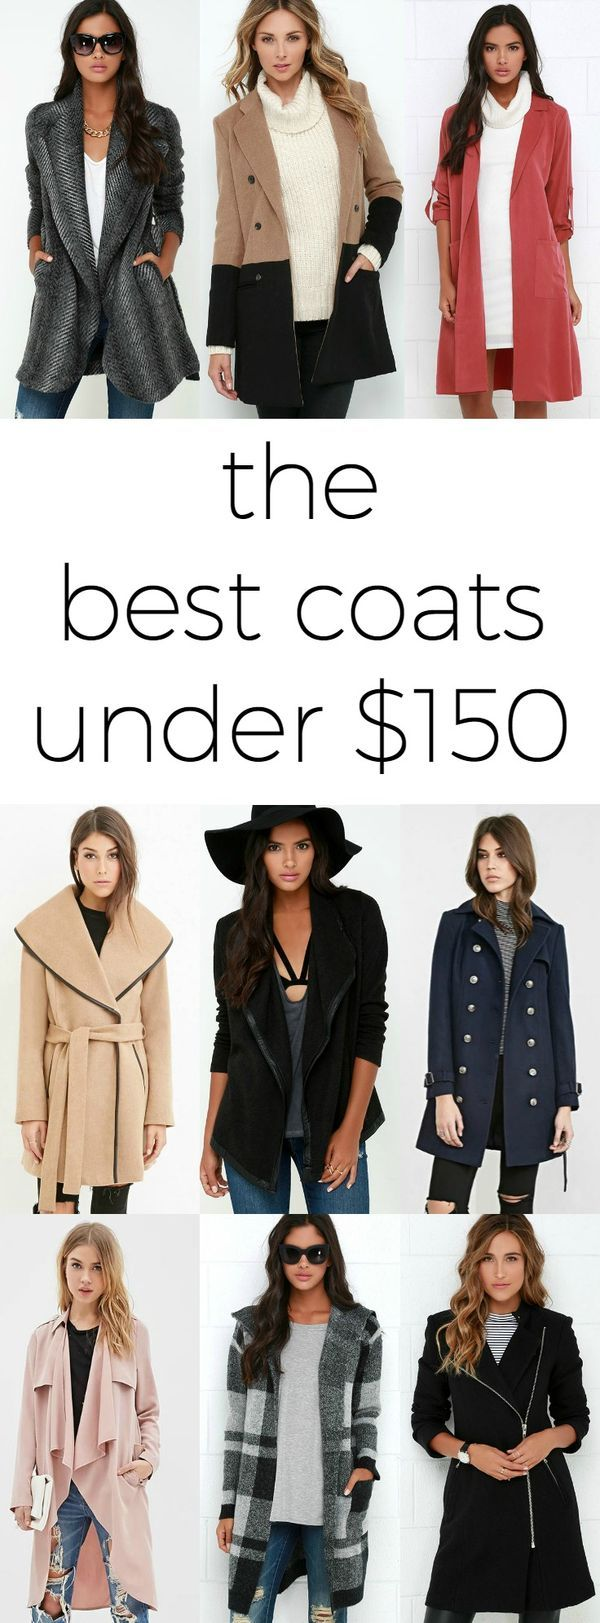 The BEST winter coats for women under $150! | by @ashleynicholas at ashleybrookenicholas.com